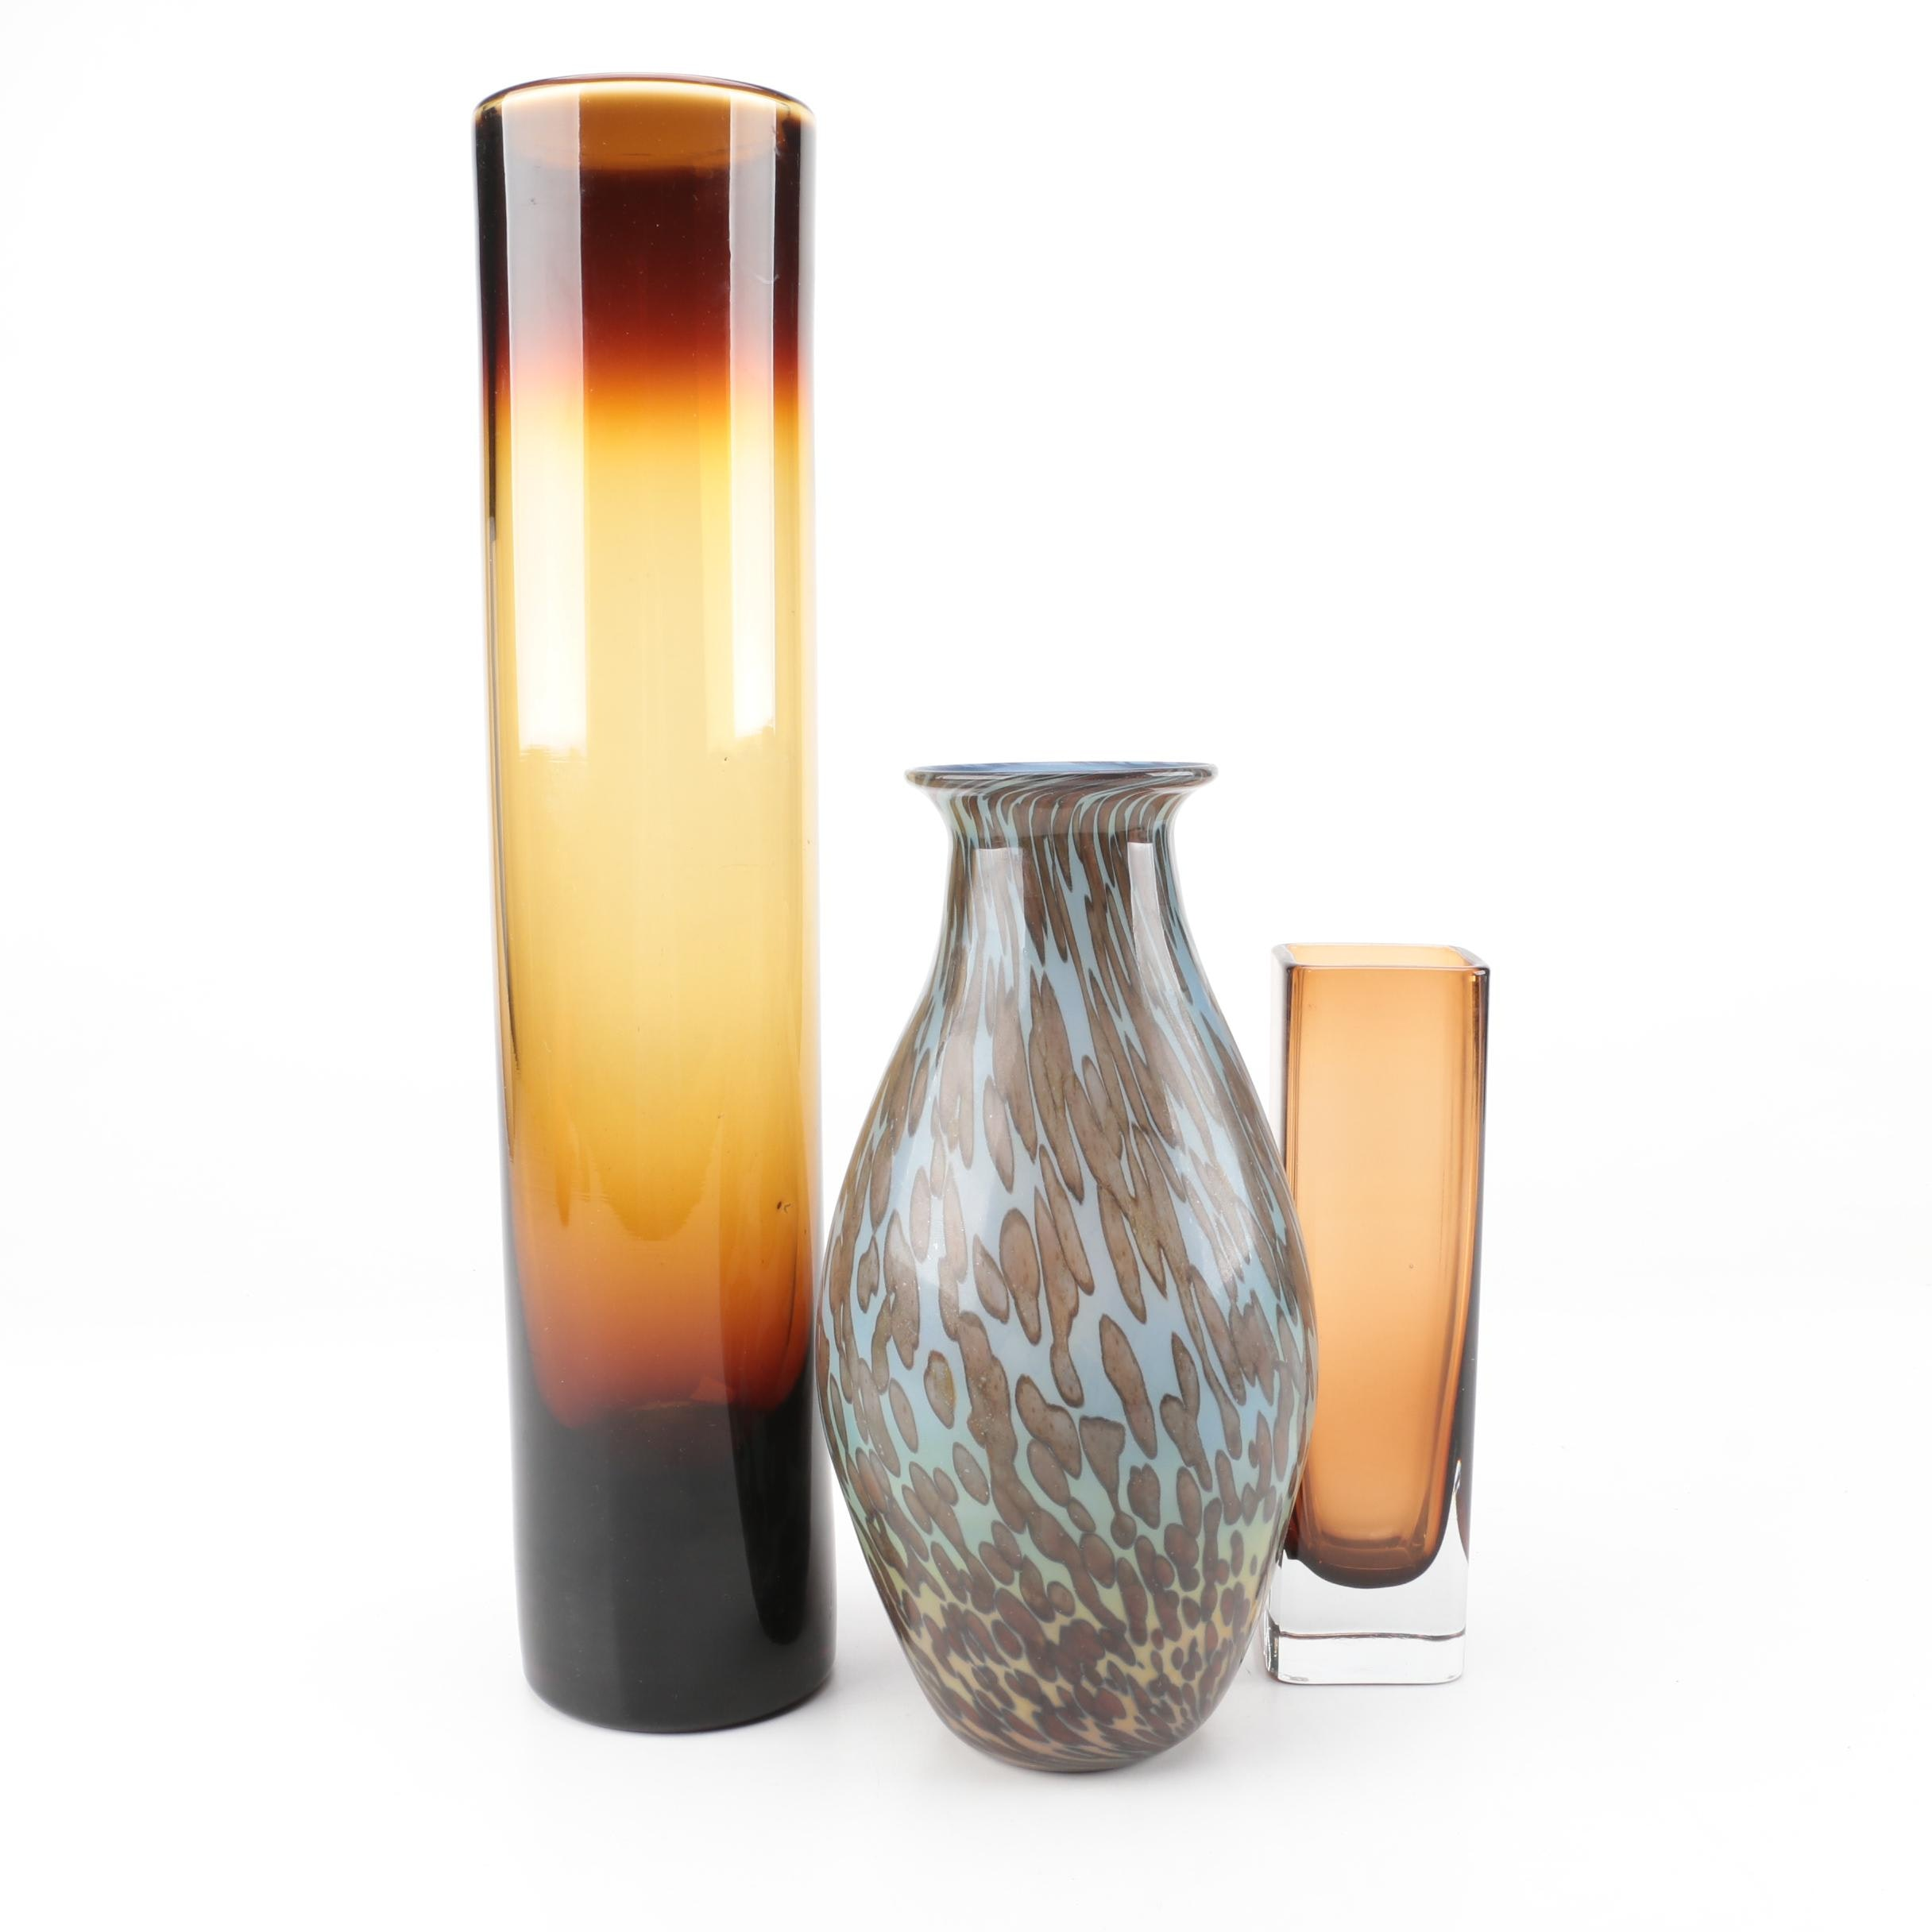 Hand Blown with Signed Art Glass Vases